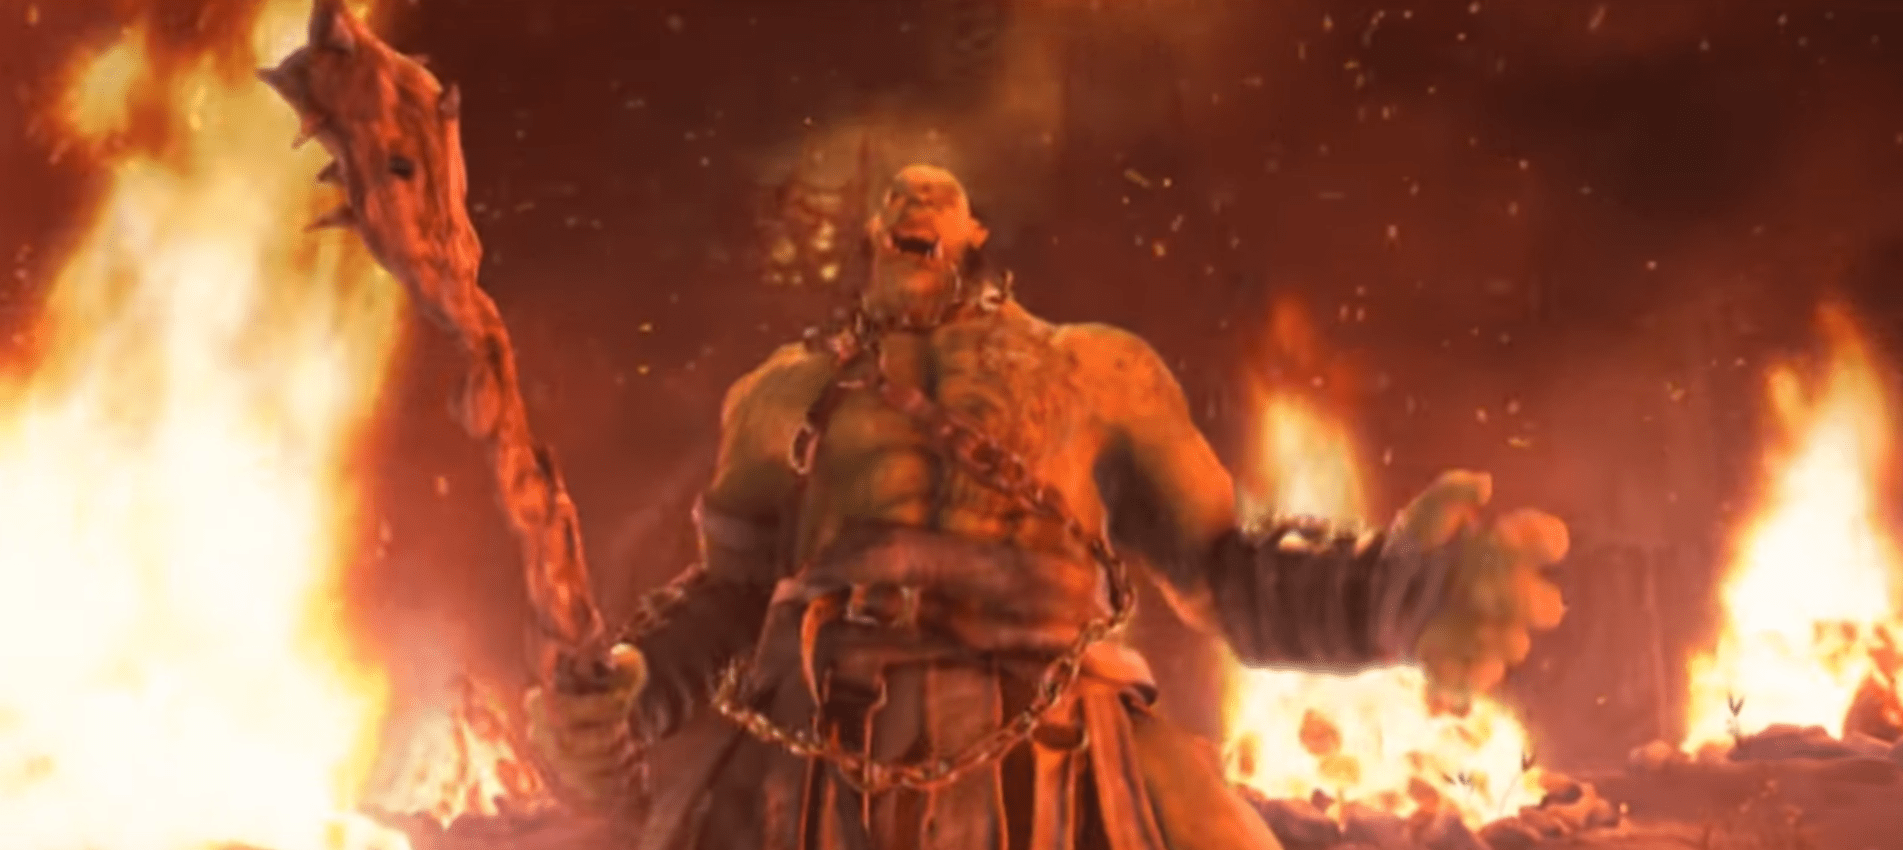 Upcoming World Of Warcraft: Shadowlands Patch Brings Much Needed Buff To Fury Warriors